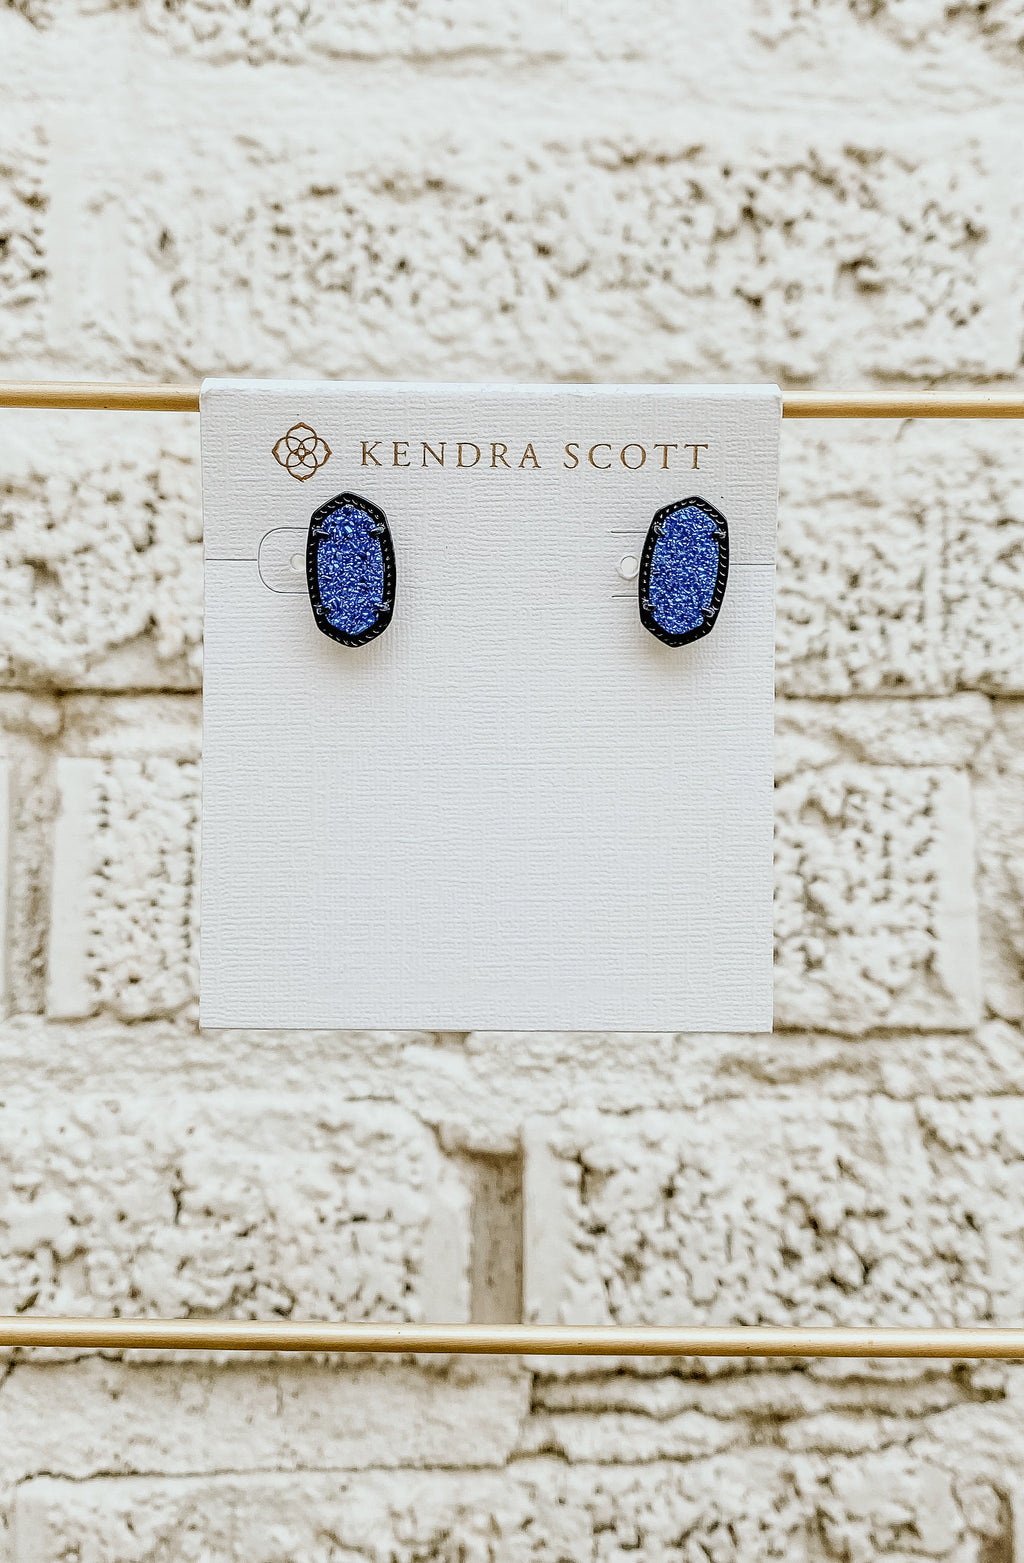 KENDRA SCOTT ELLIE EARRING